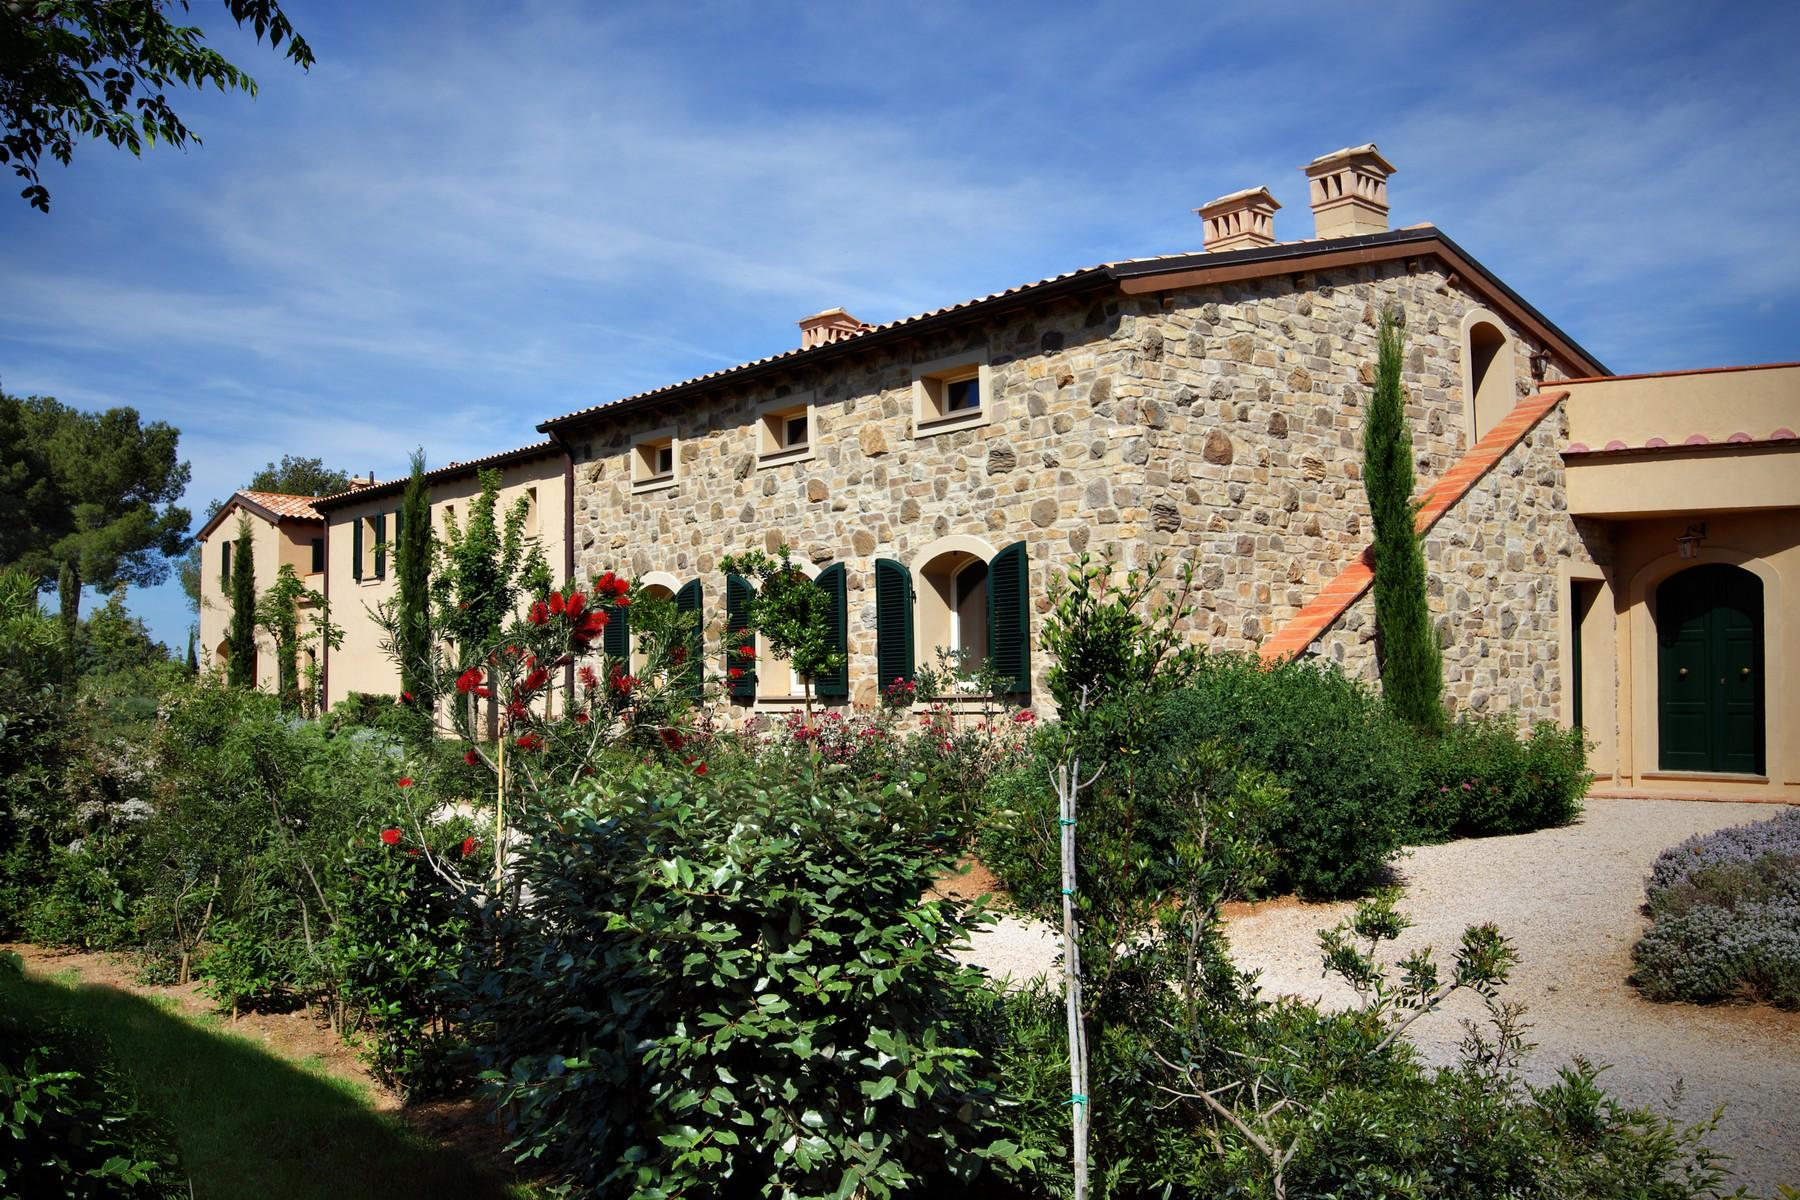 New farmhouses in the Tuscan hills - 2